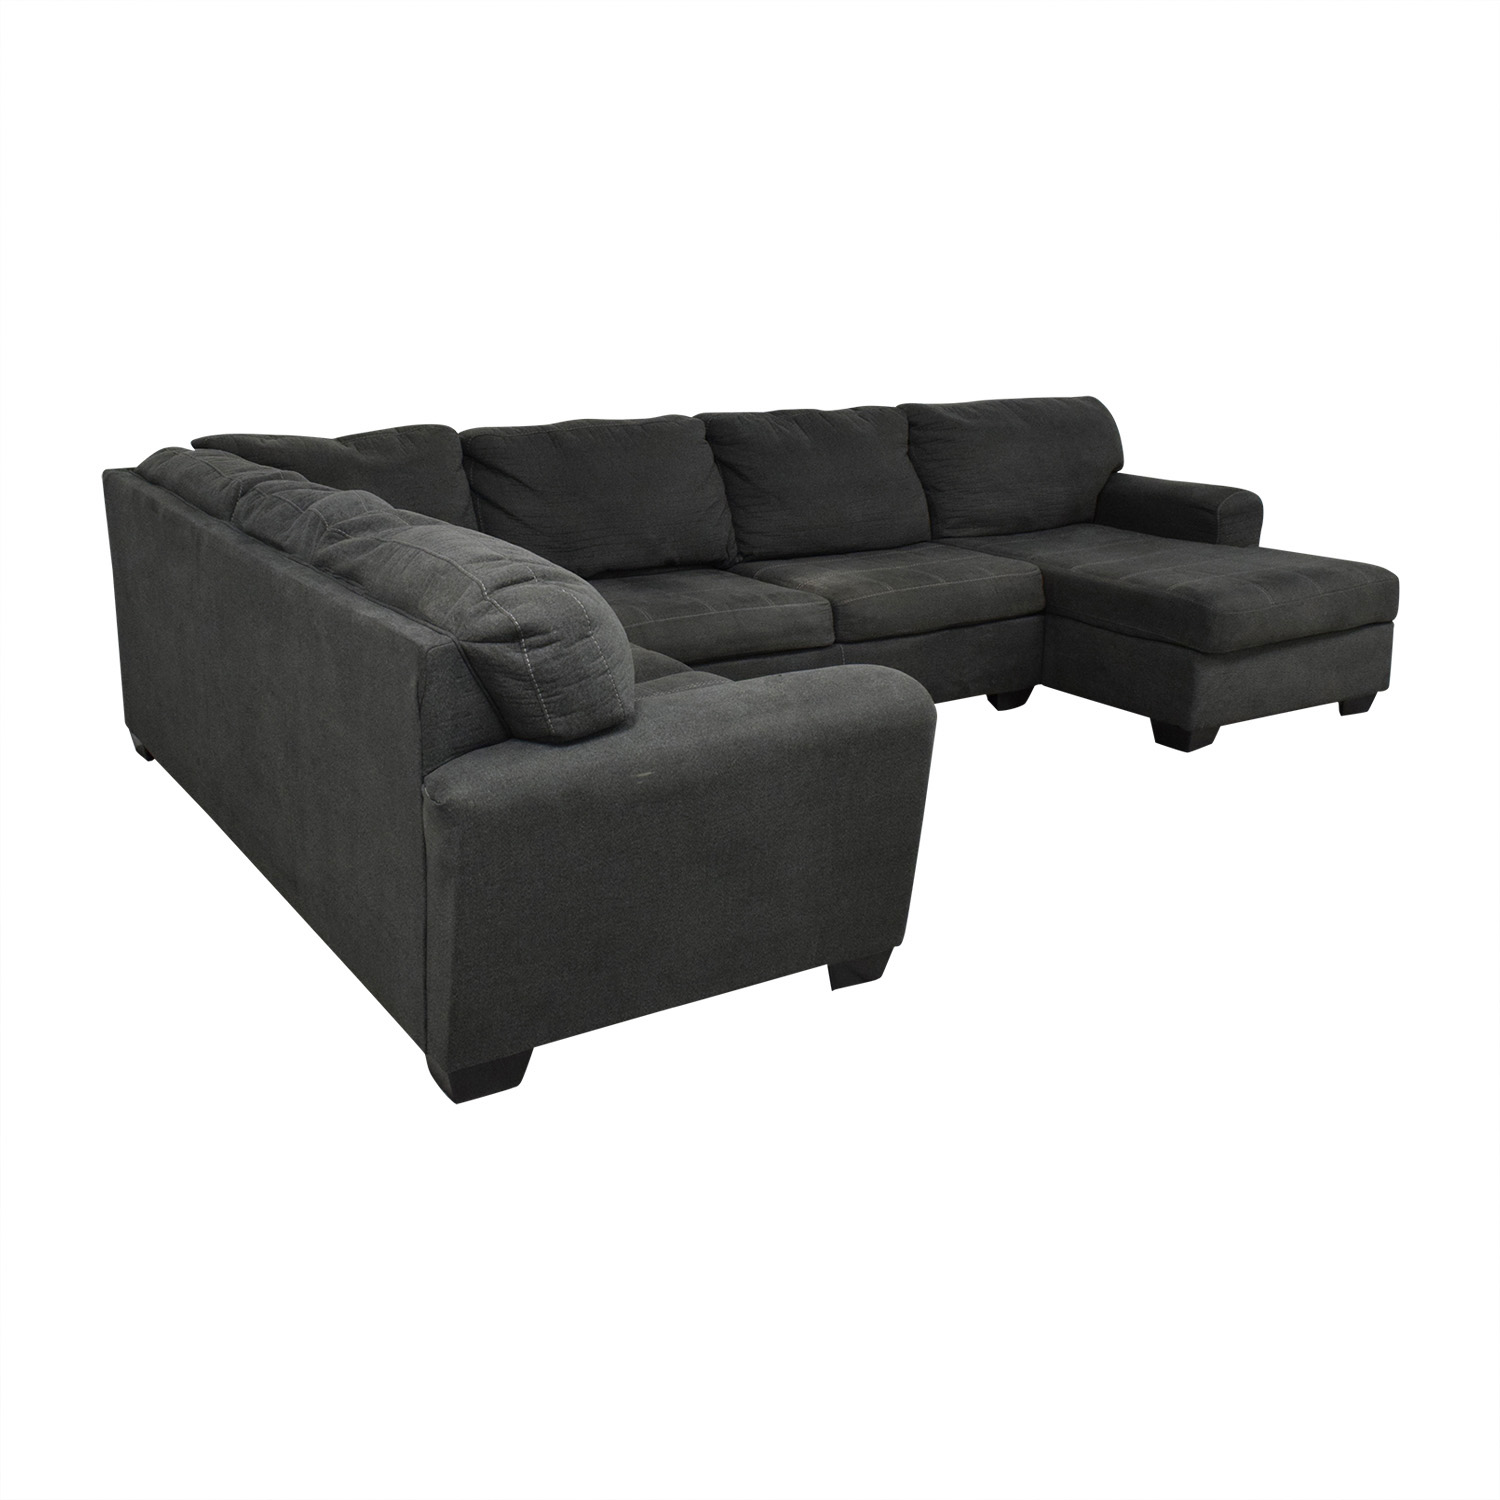 Ashley Furniture Ashley Furniture 3-Piece Sectional Sofa for sale